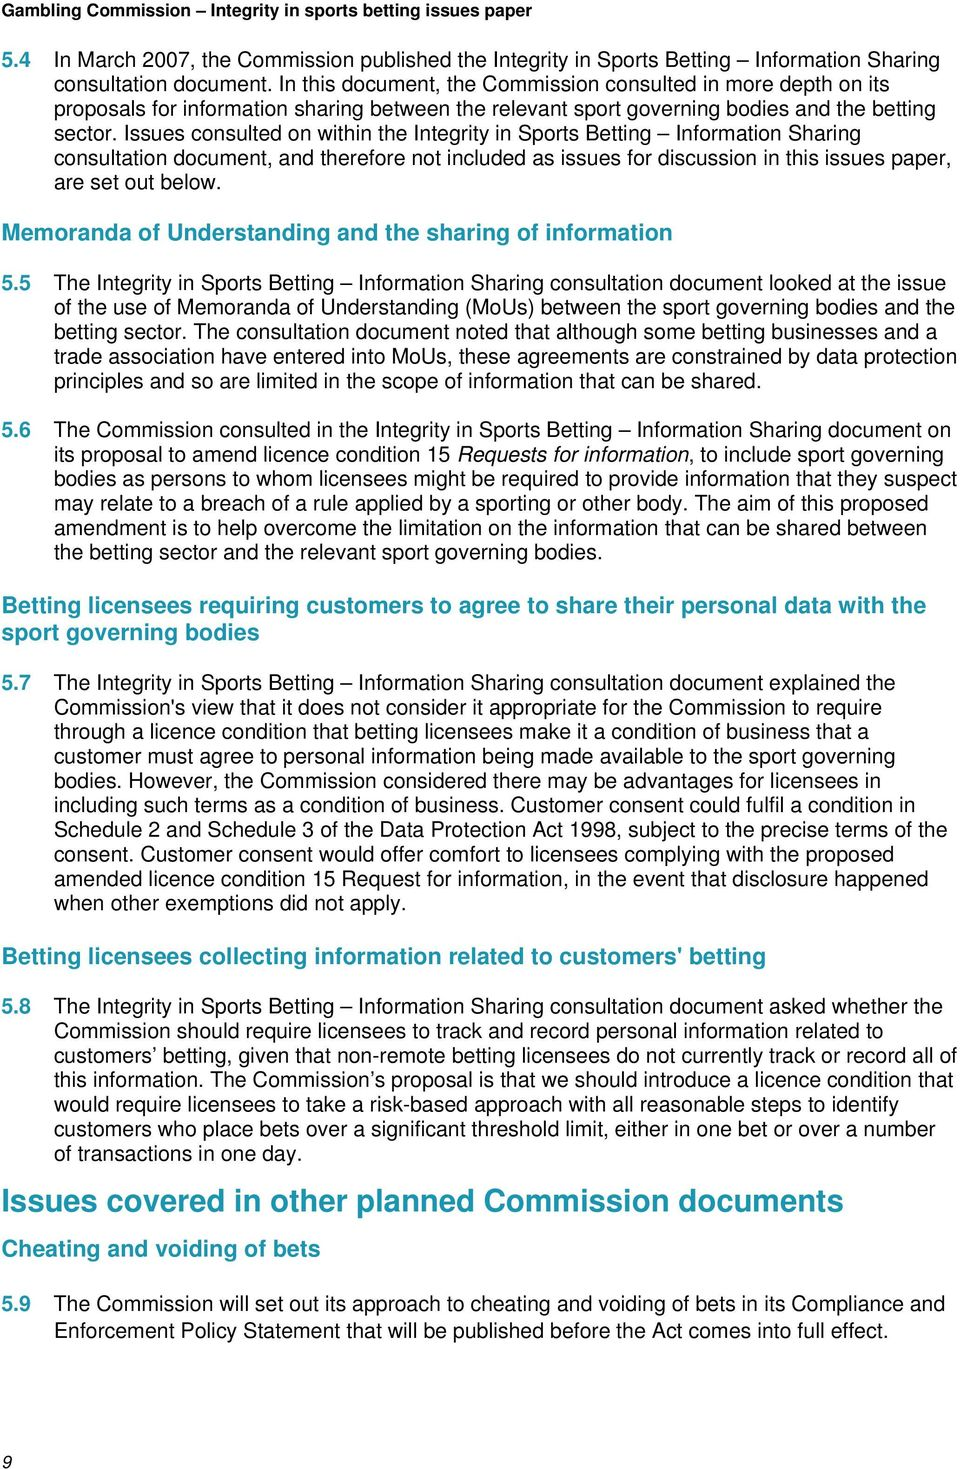 Issues consulted on within the Integrity in Sports Betting Information Sharing consultation document, and therefore not included as issues for discussion in this issues paper, are set out below.